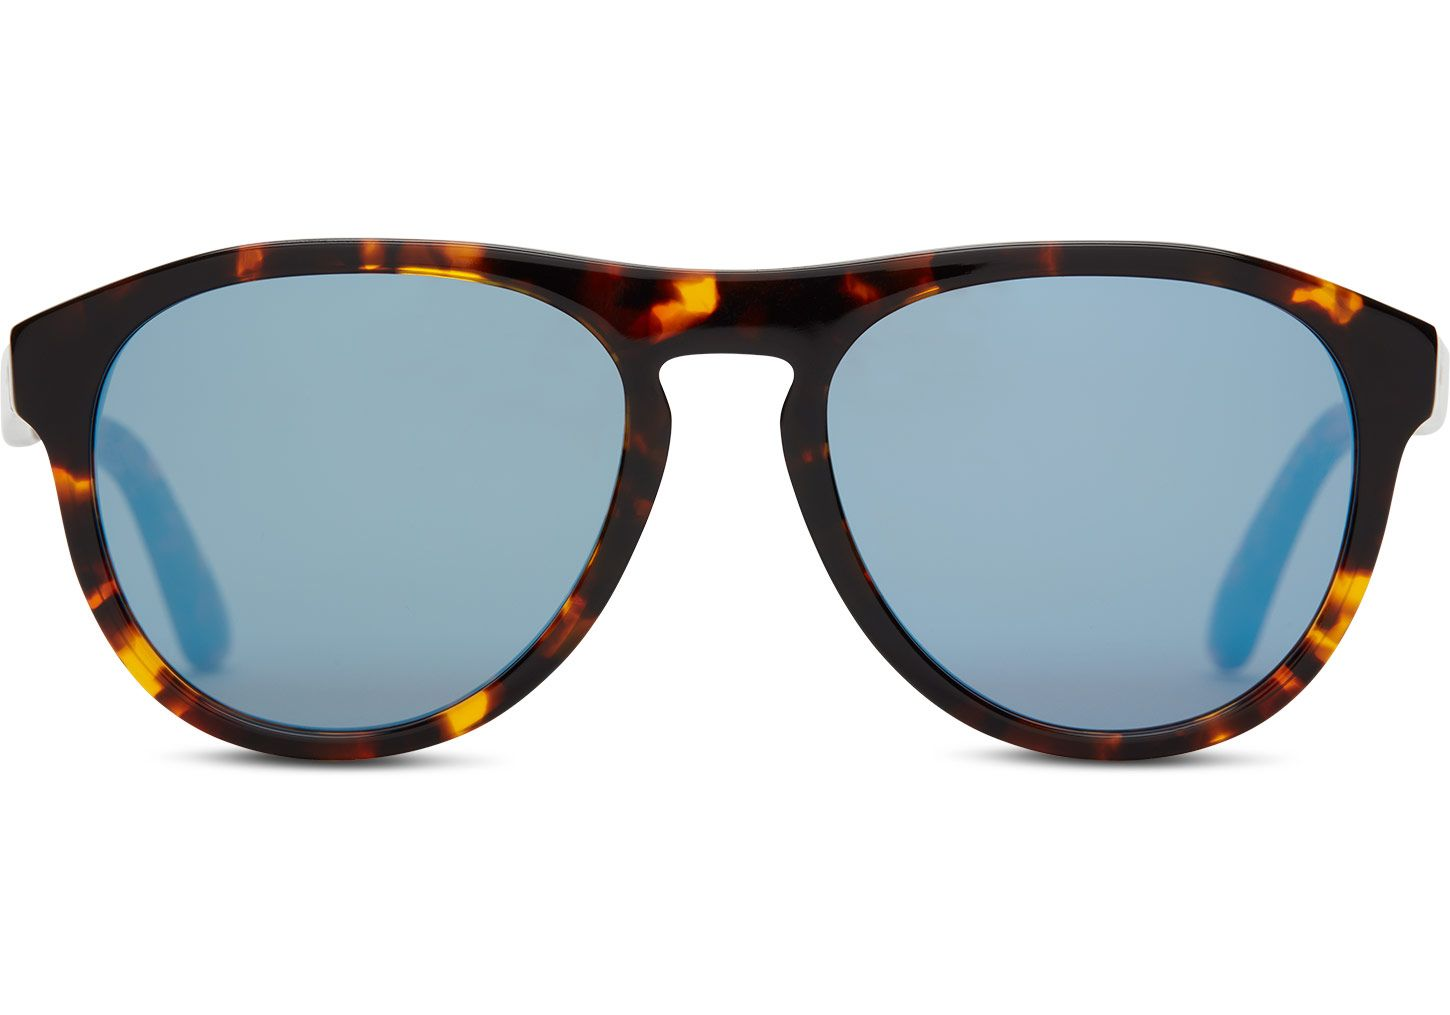 287a63e121 The Declan is designed for the confident and fearless. Whiskey tortoise  frames and blue mirror